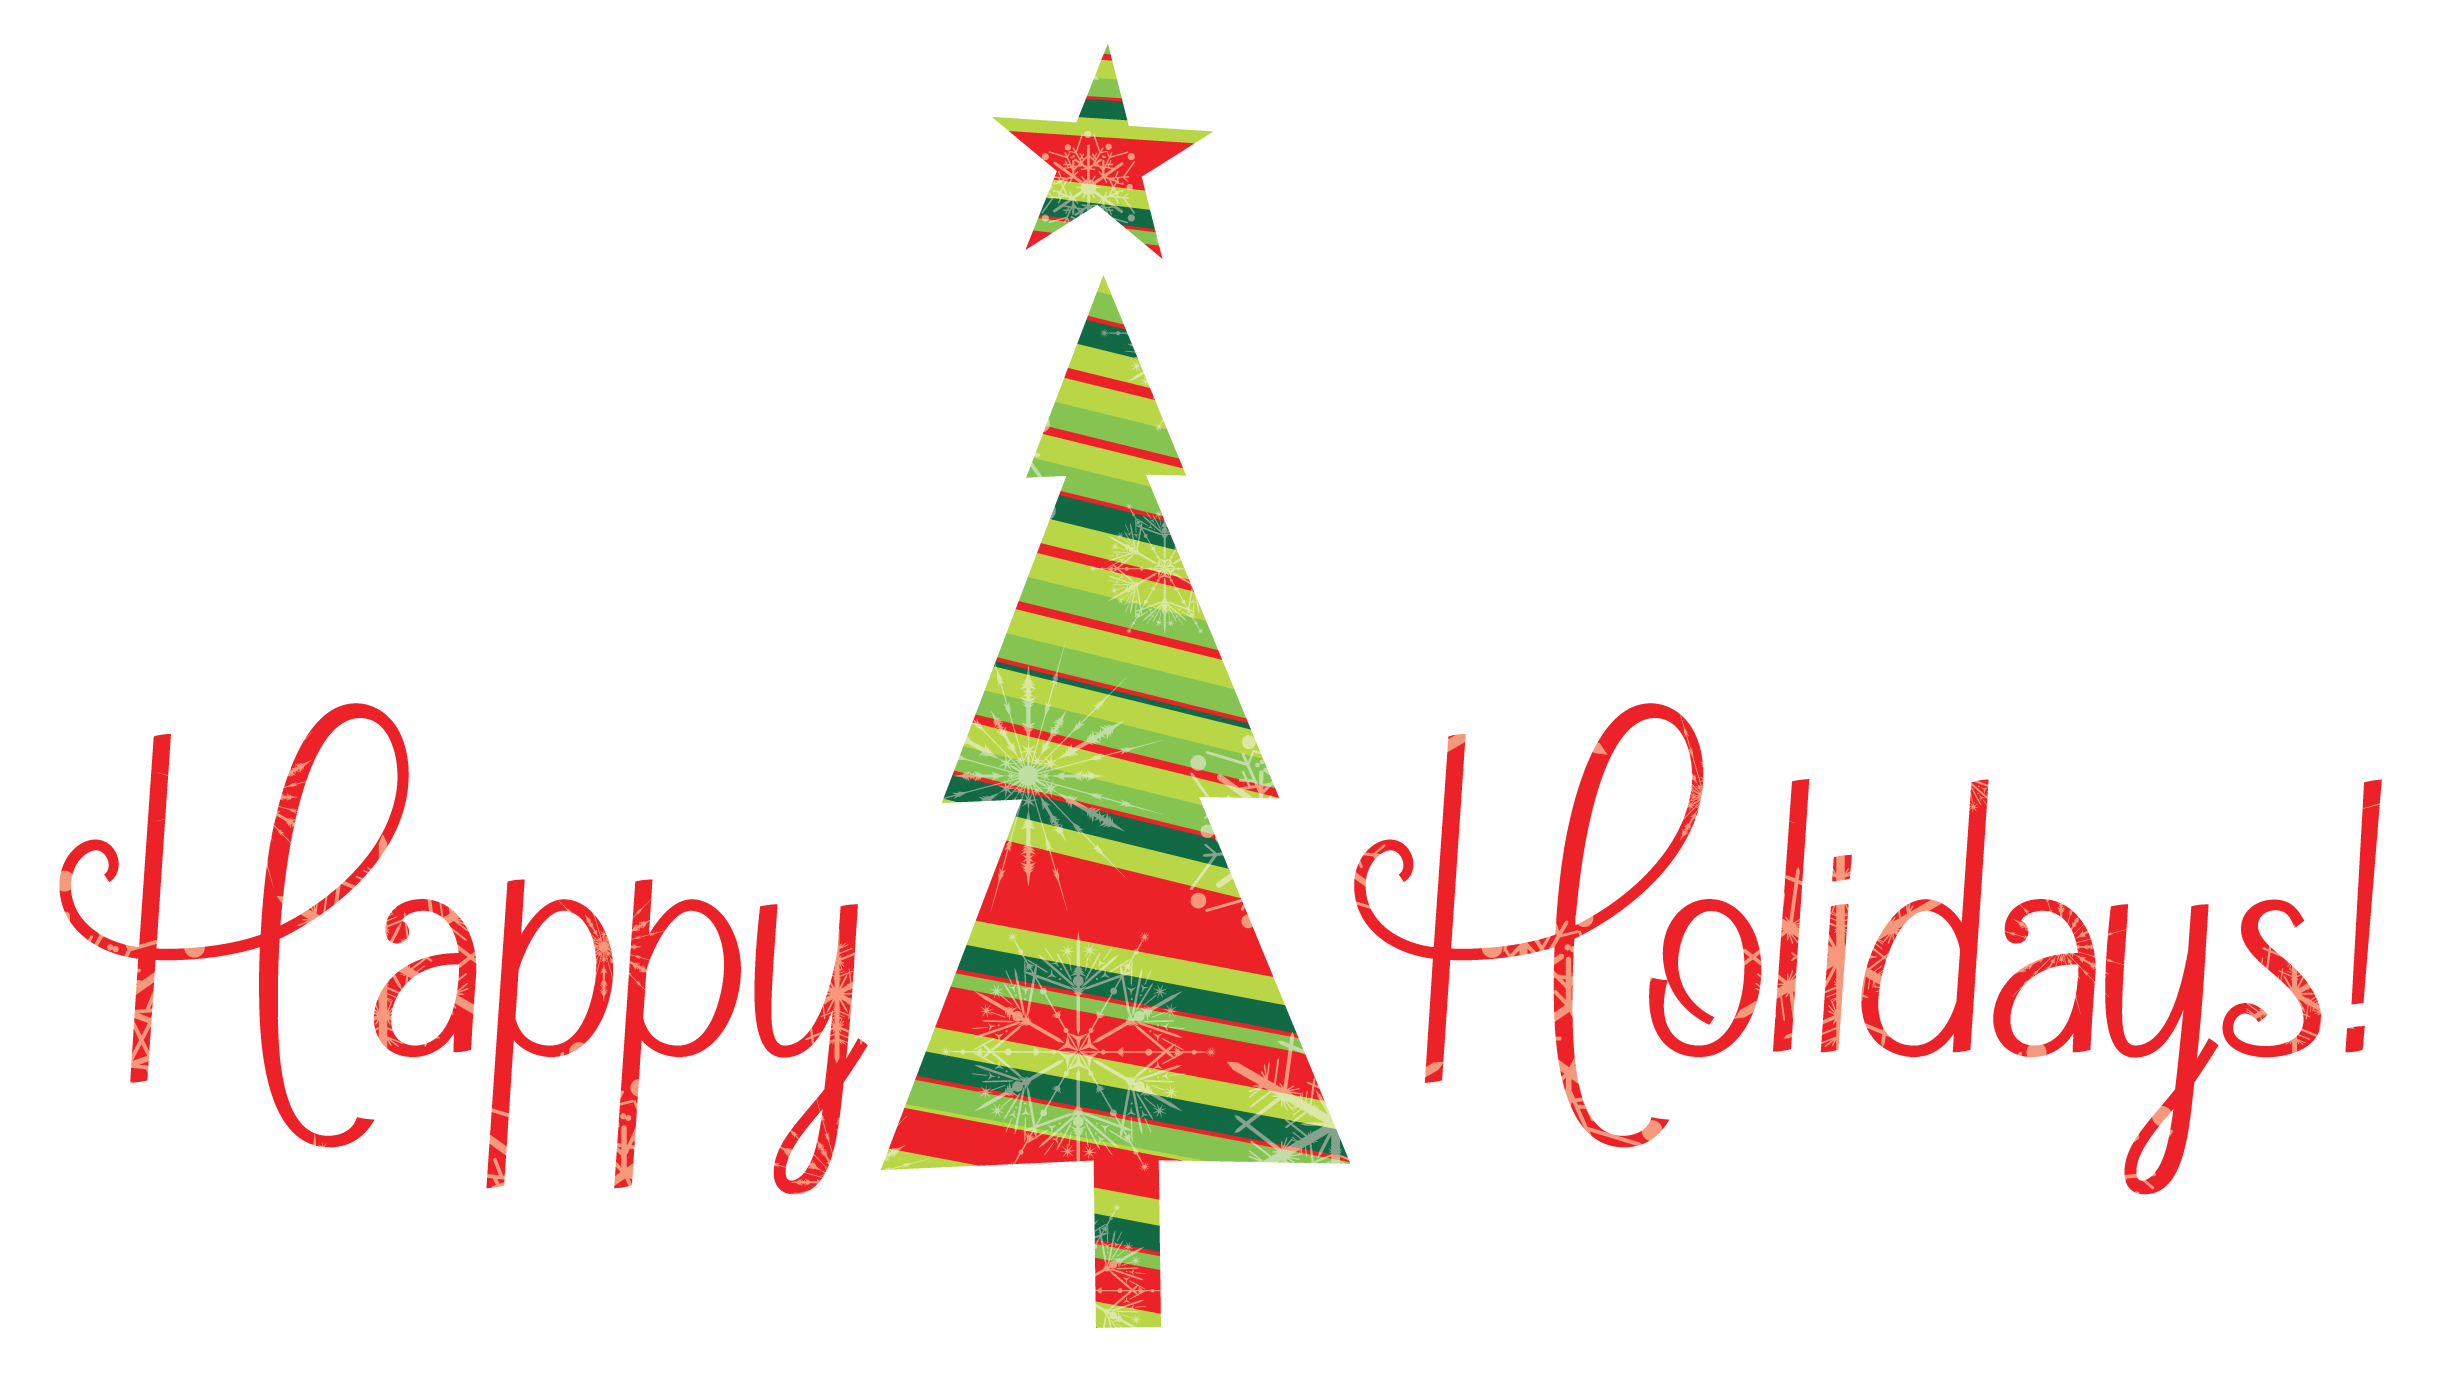 Happy Holidays Holiday Pictures Images Mentsdb Page Clip Art